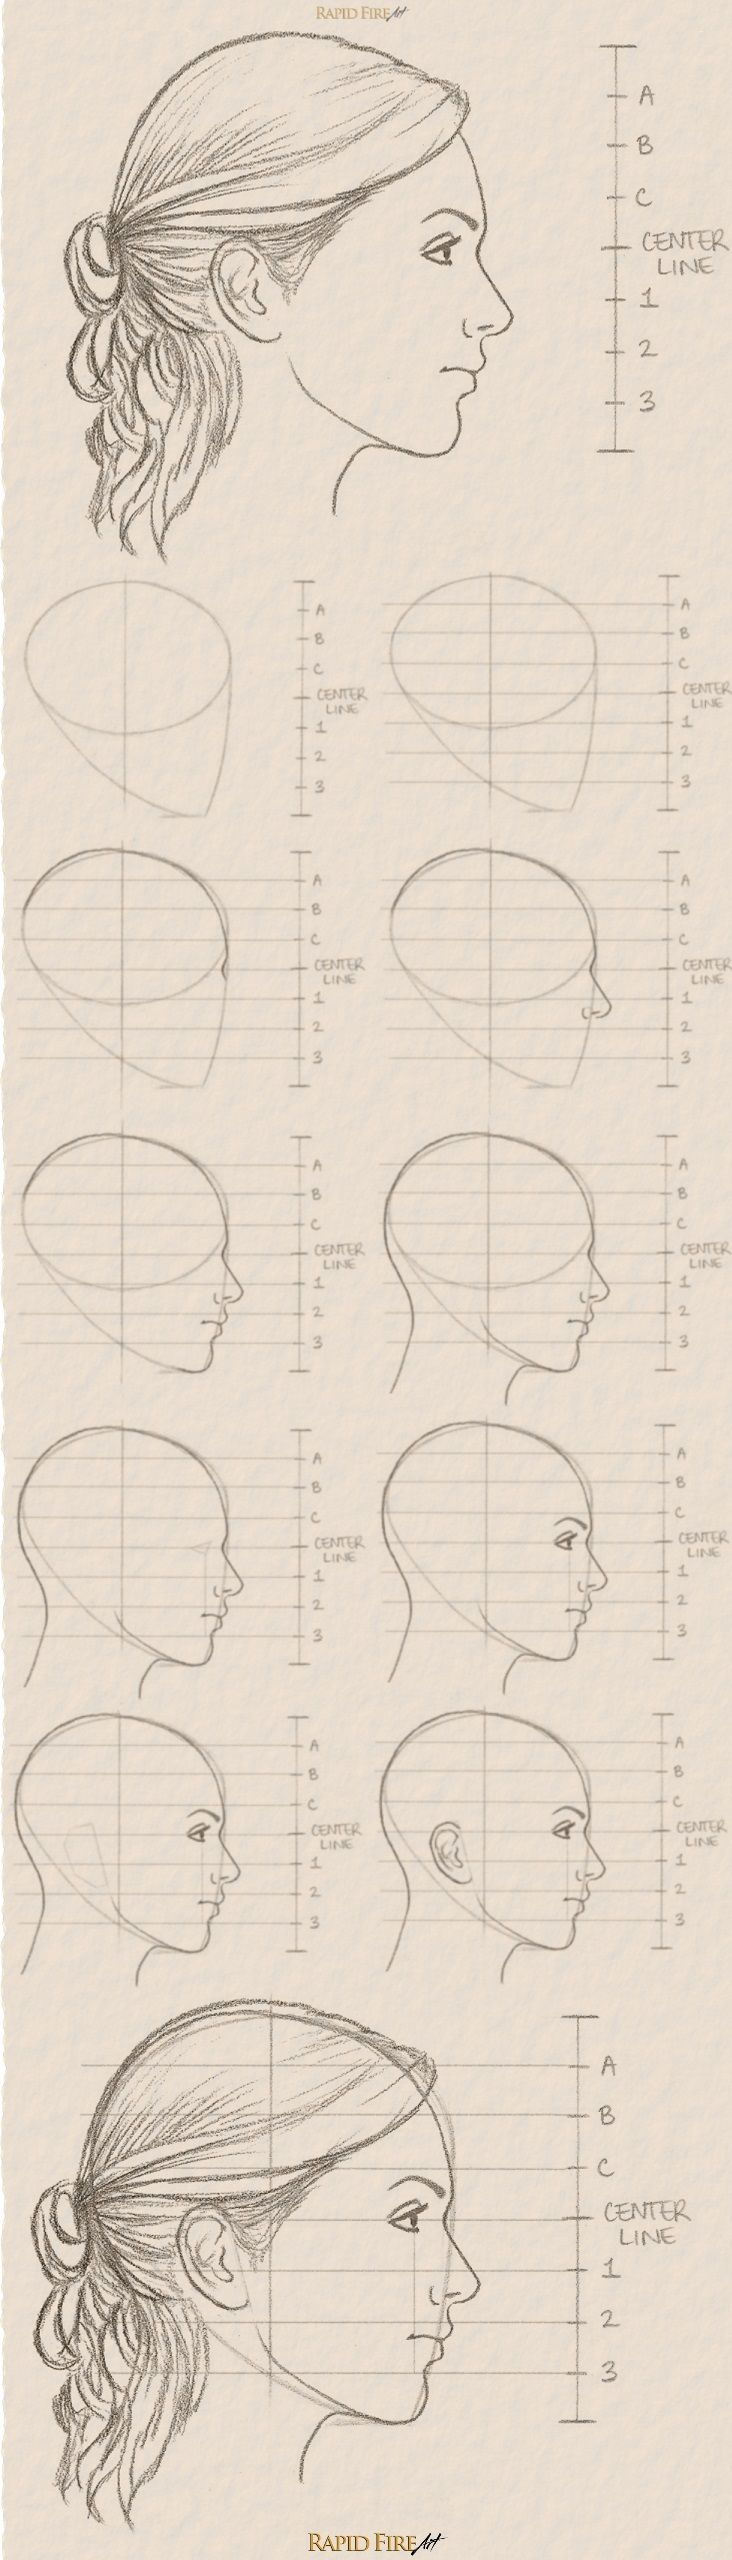 small resolution of how to draw a female face side view how to draw a face pencil drawings drawing techniques drawing tips